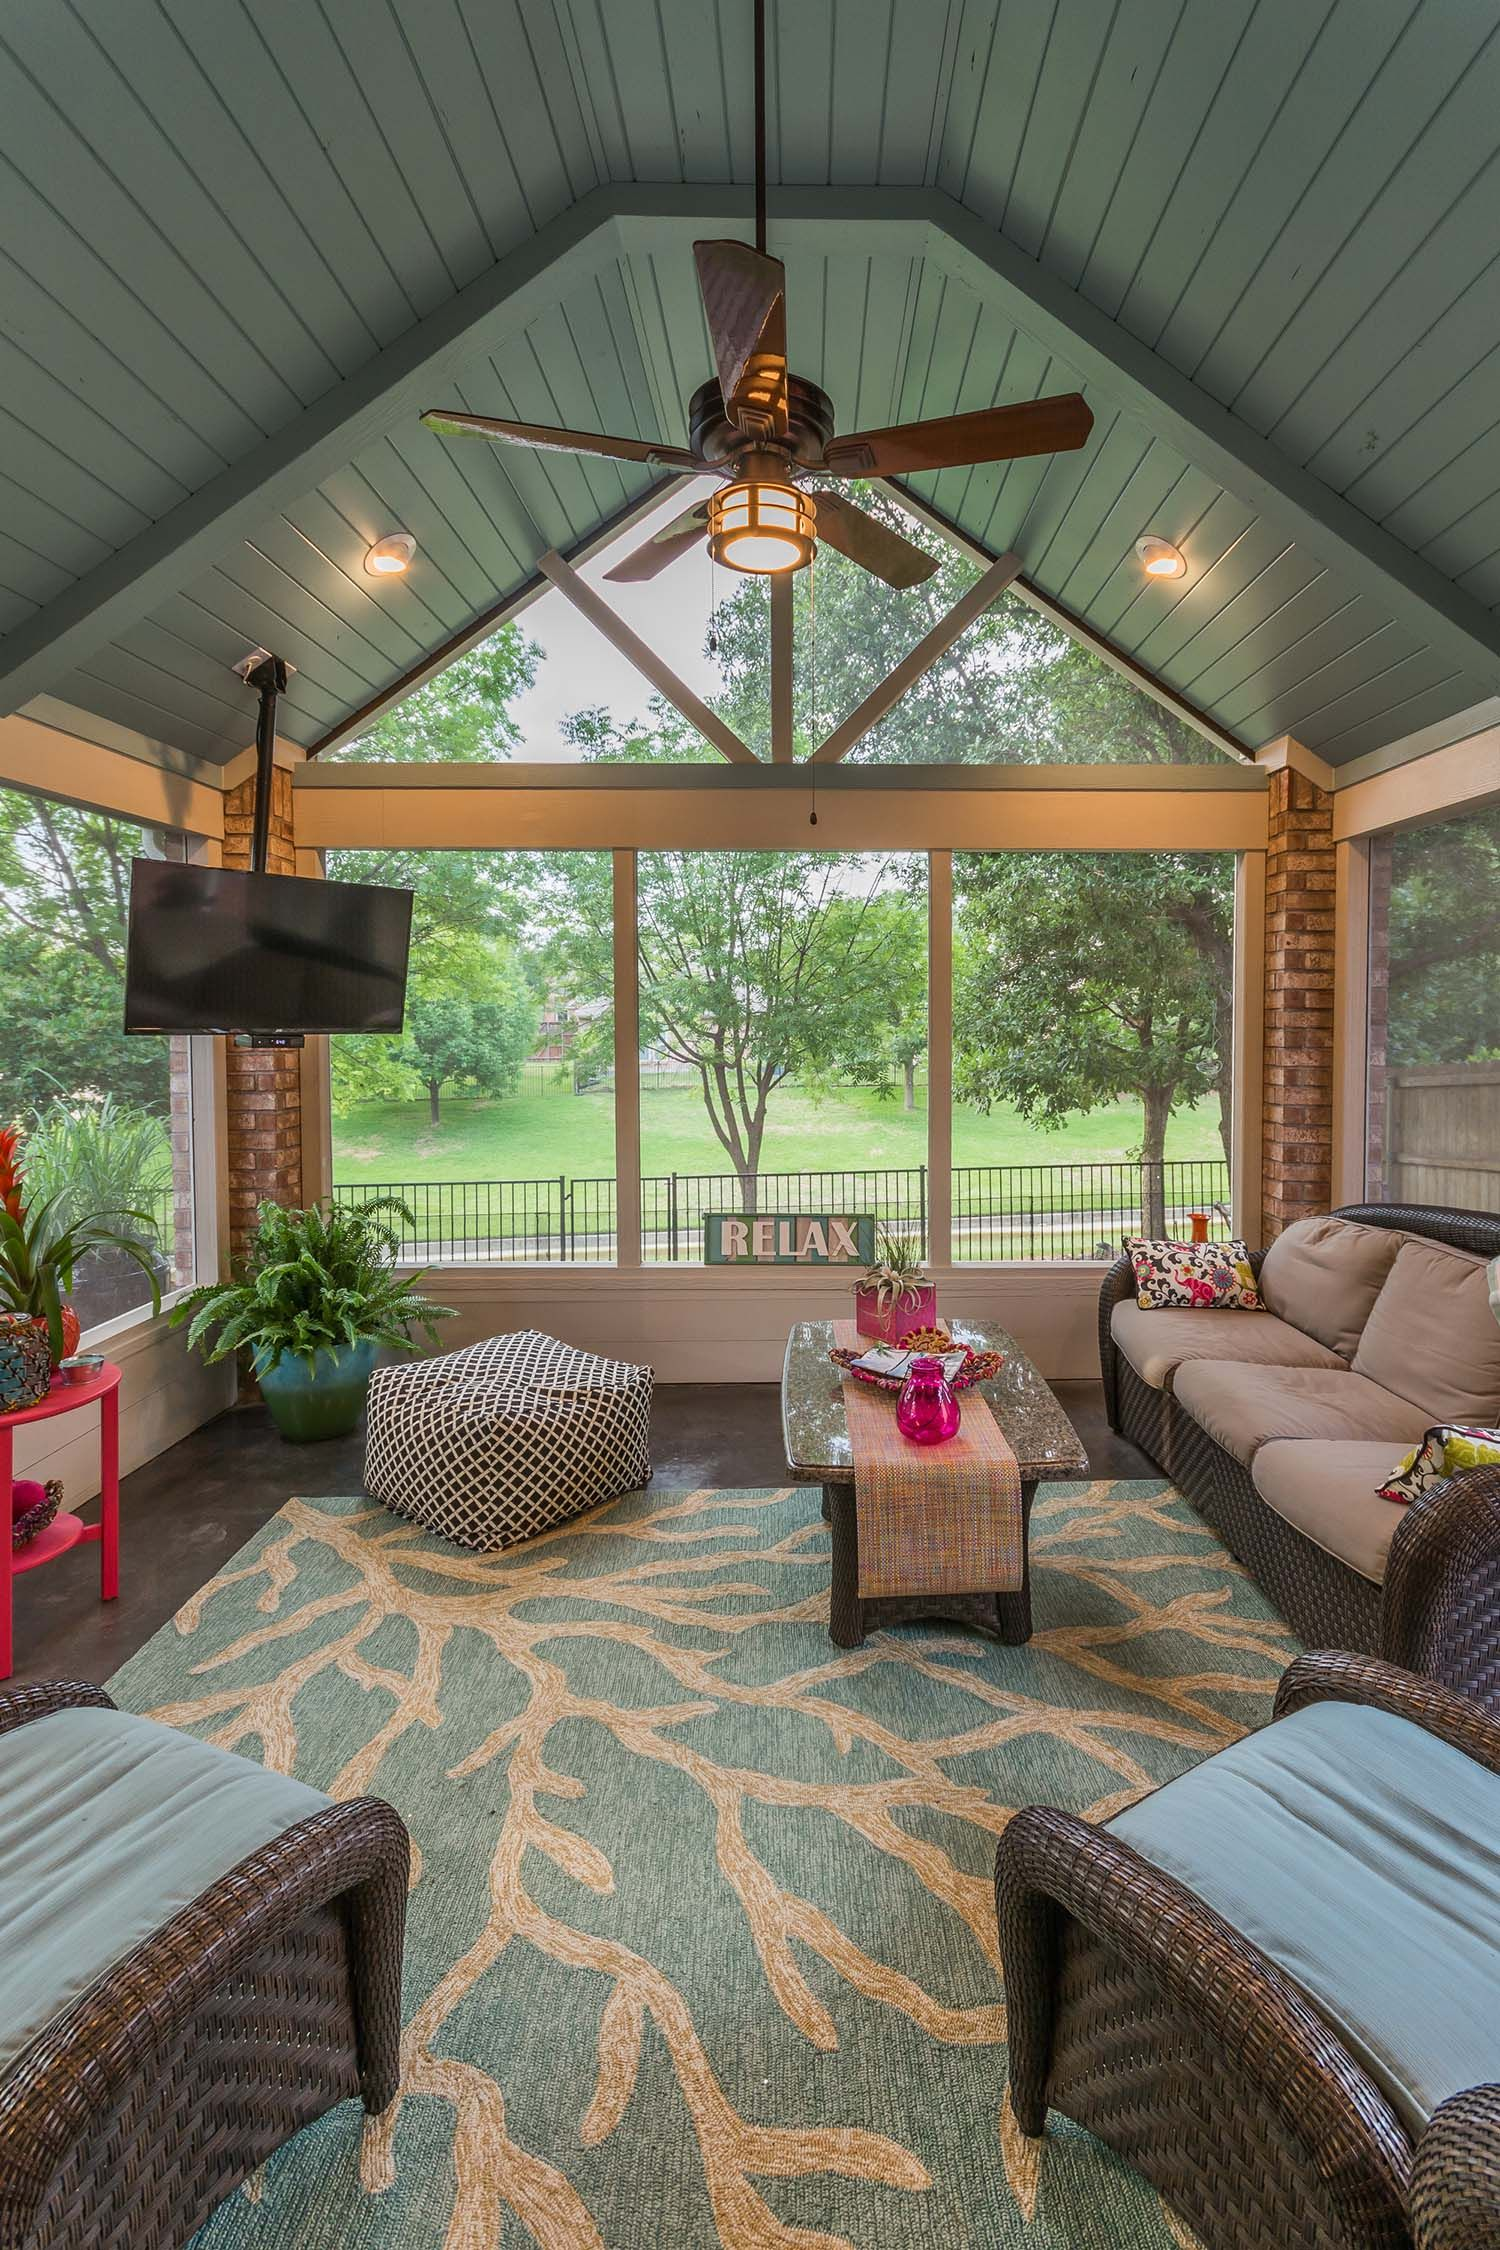 38 amazingly cozy and relaxing screened porch design ideas - Porch Ideas